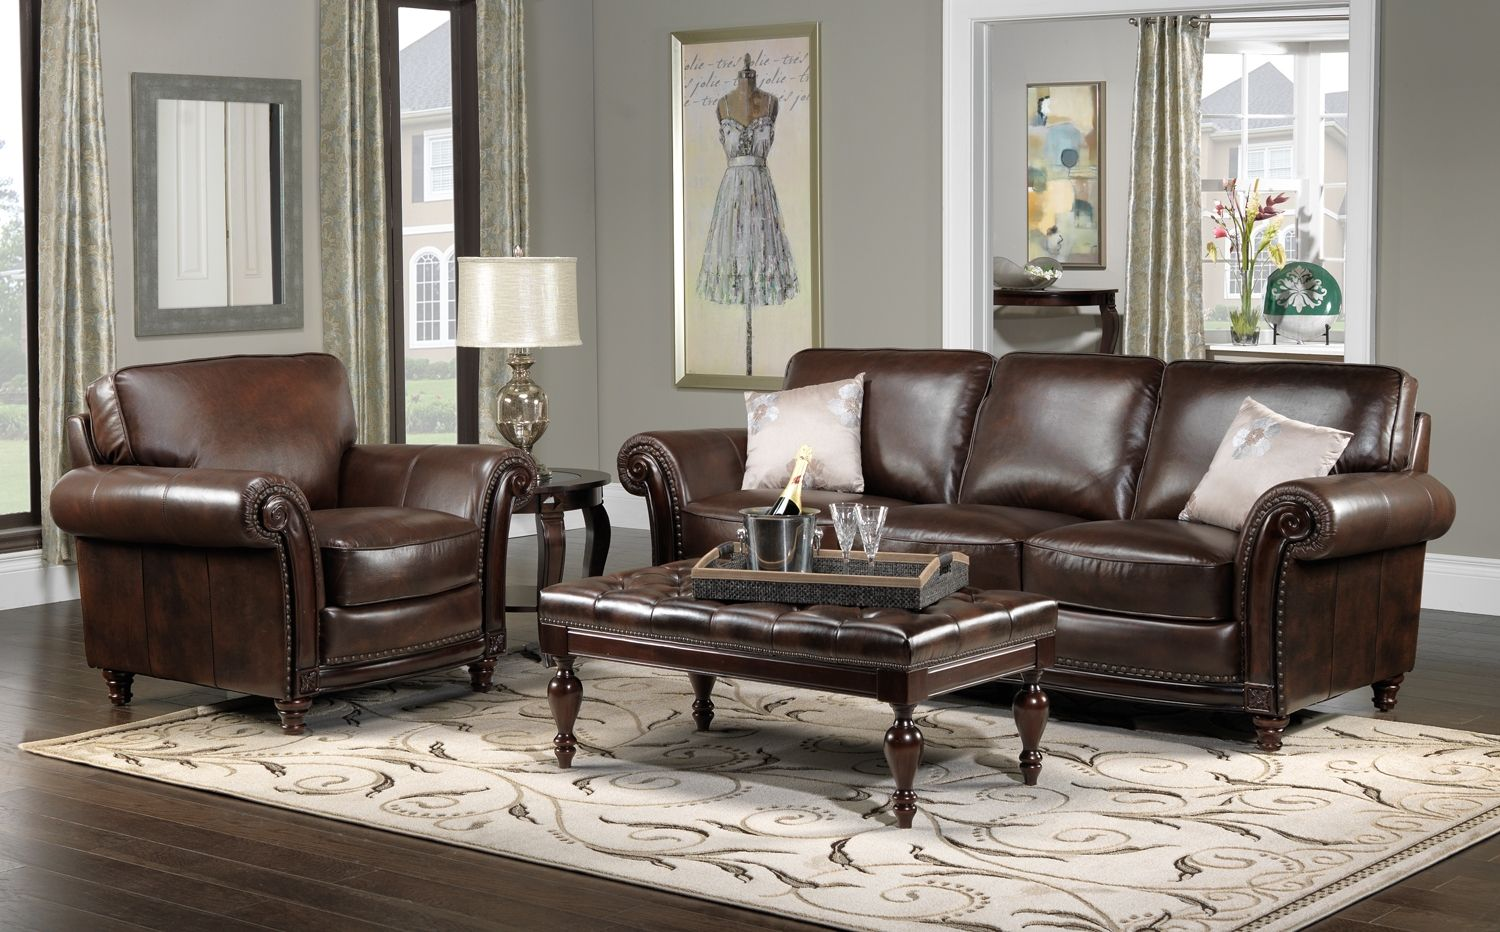 Dream house decor ideas for brown leather furniture gngkxz for Family room leather furniture